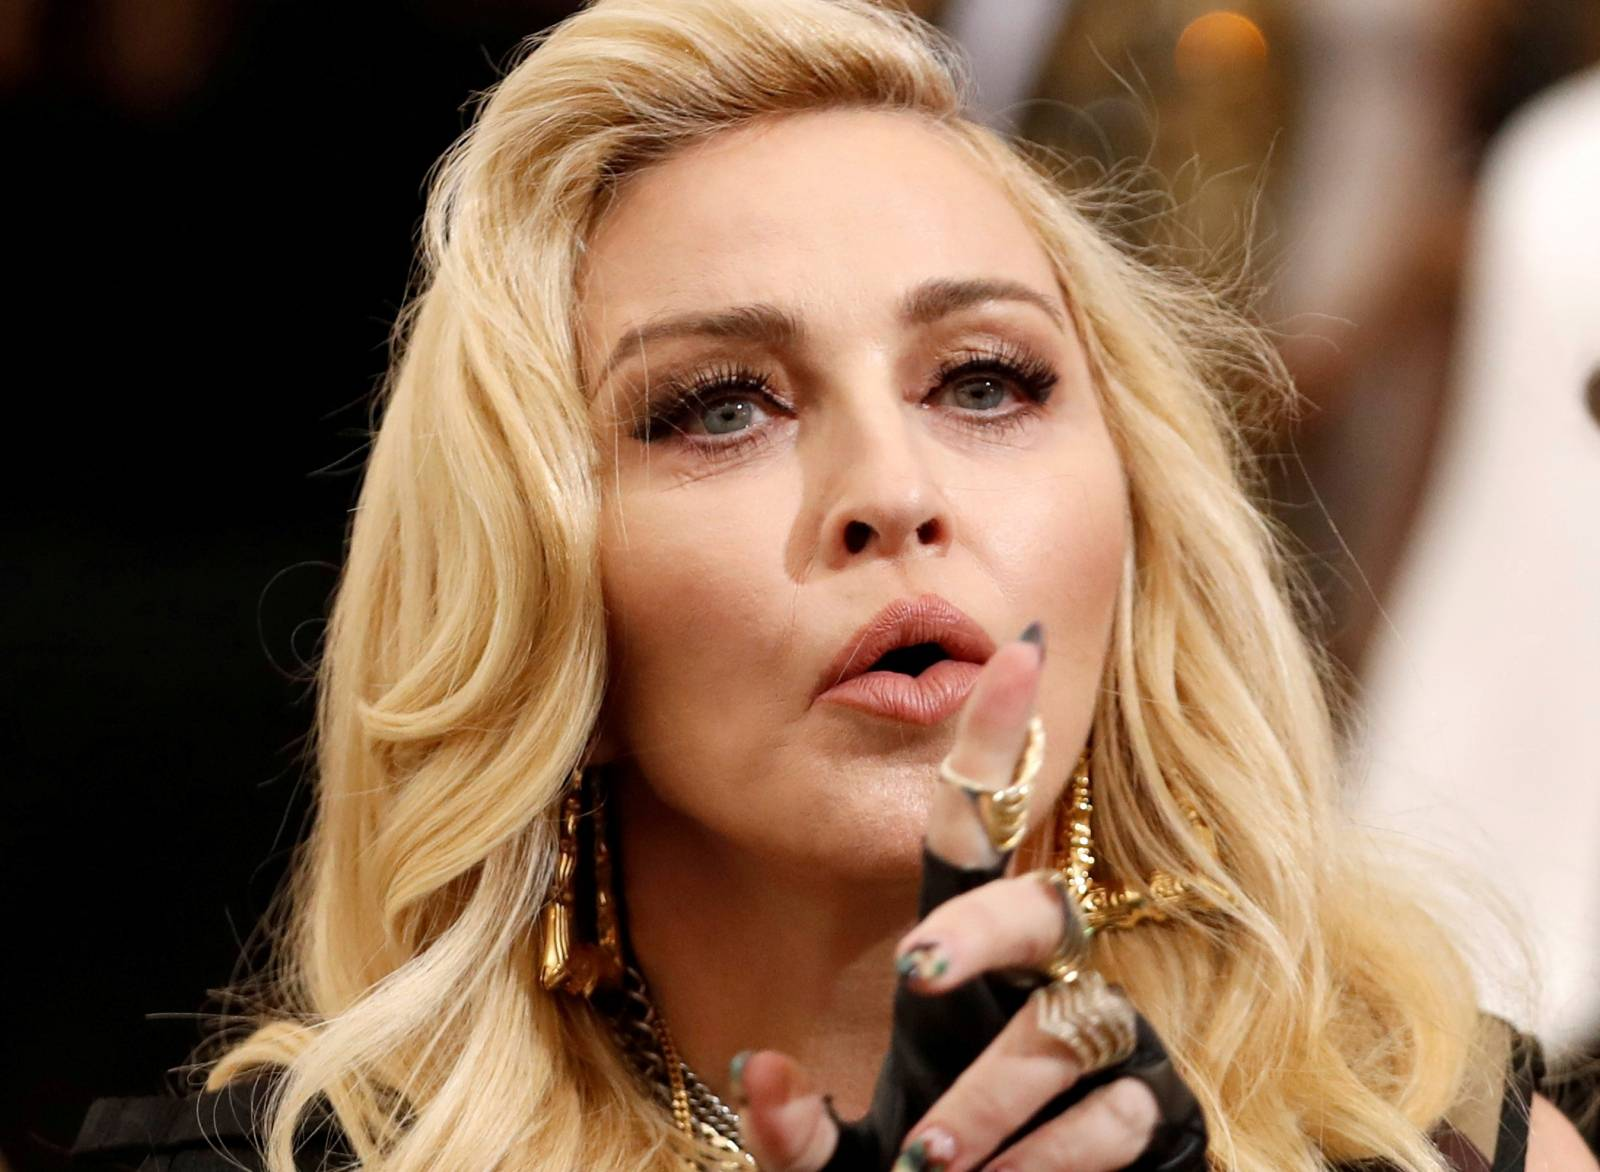 FILE PHOTO: FILE PHOTO: Singer Madonna arrives at the Metropolitan Museum of Art's Gala, Rei Kawakubo/Comme des Garcons: Art of the In-Between in New York City